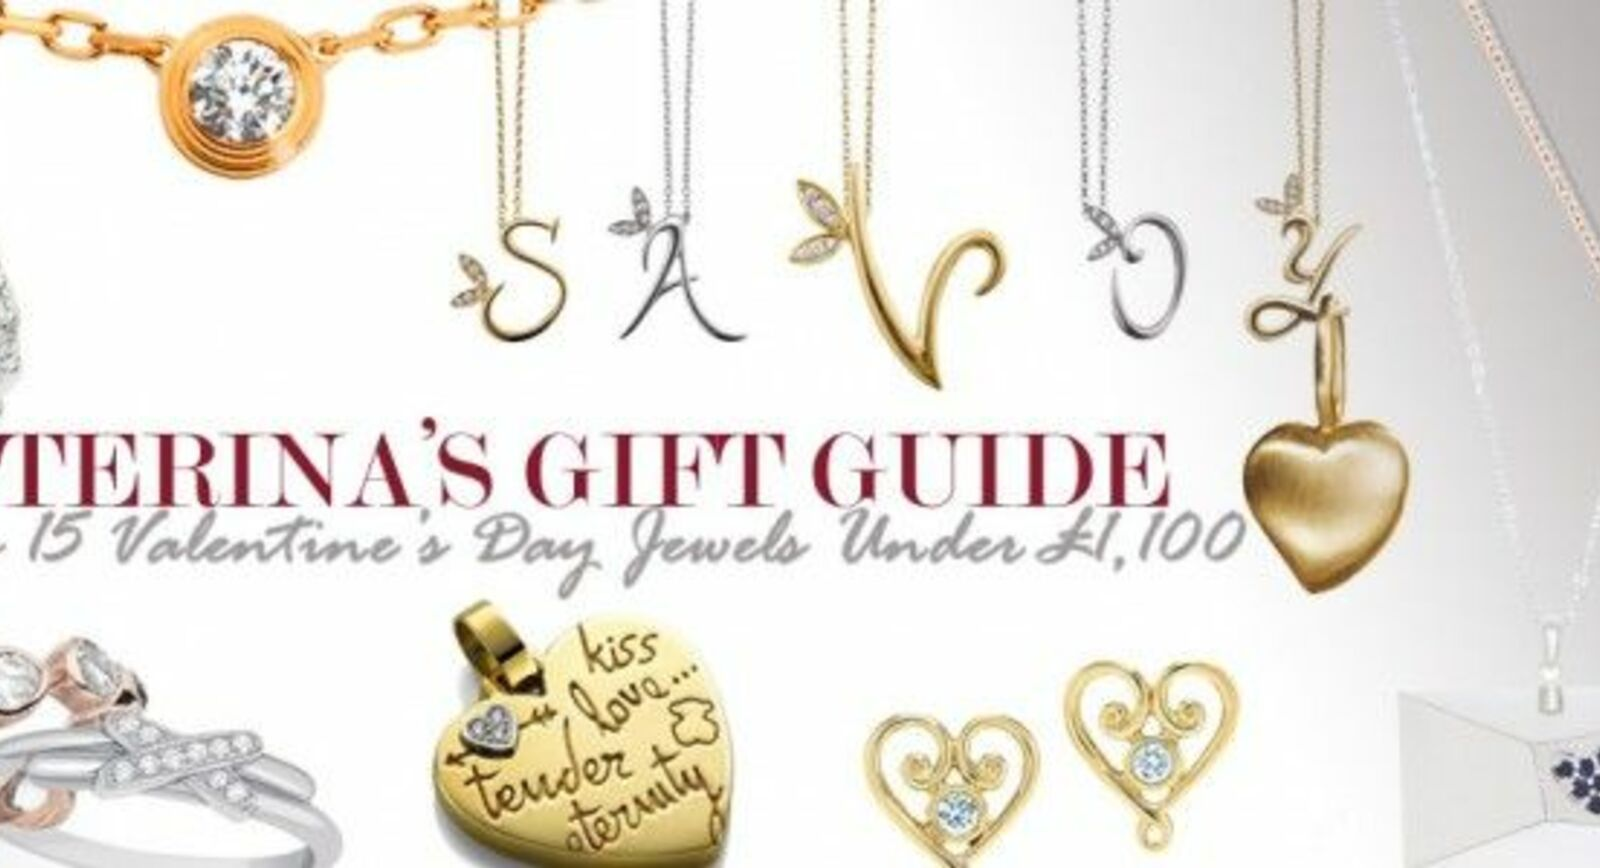 TOP 15 Valentine's Day Jewellery Under £1,100 To Buy Online